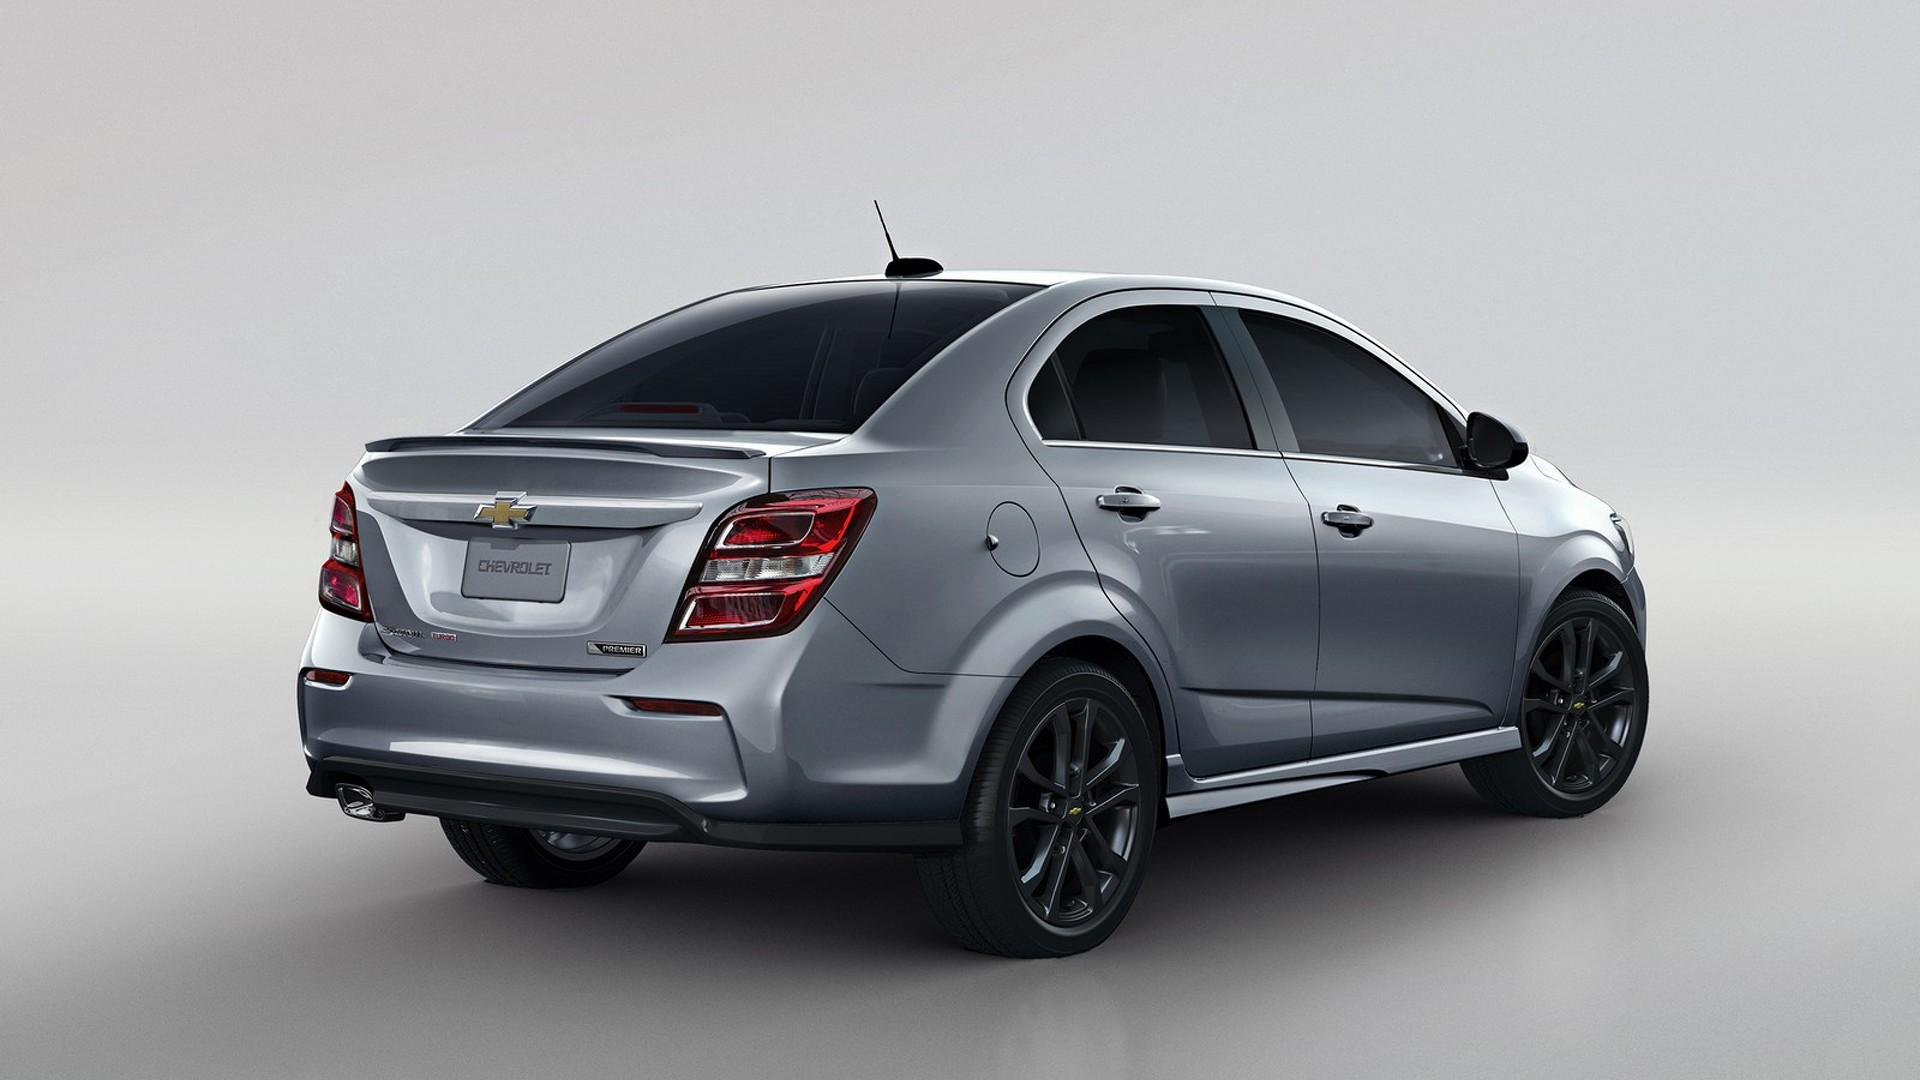 2017 chevy sonic facelift unveiled for new york chevrolet. Black Bedroom Furniture Sets. Home Design Ideas